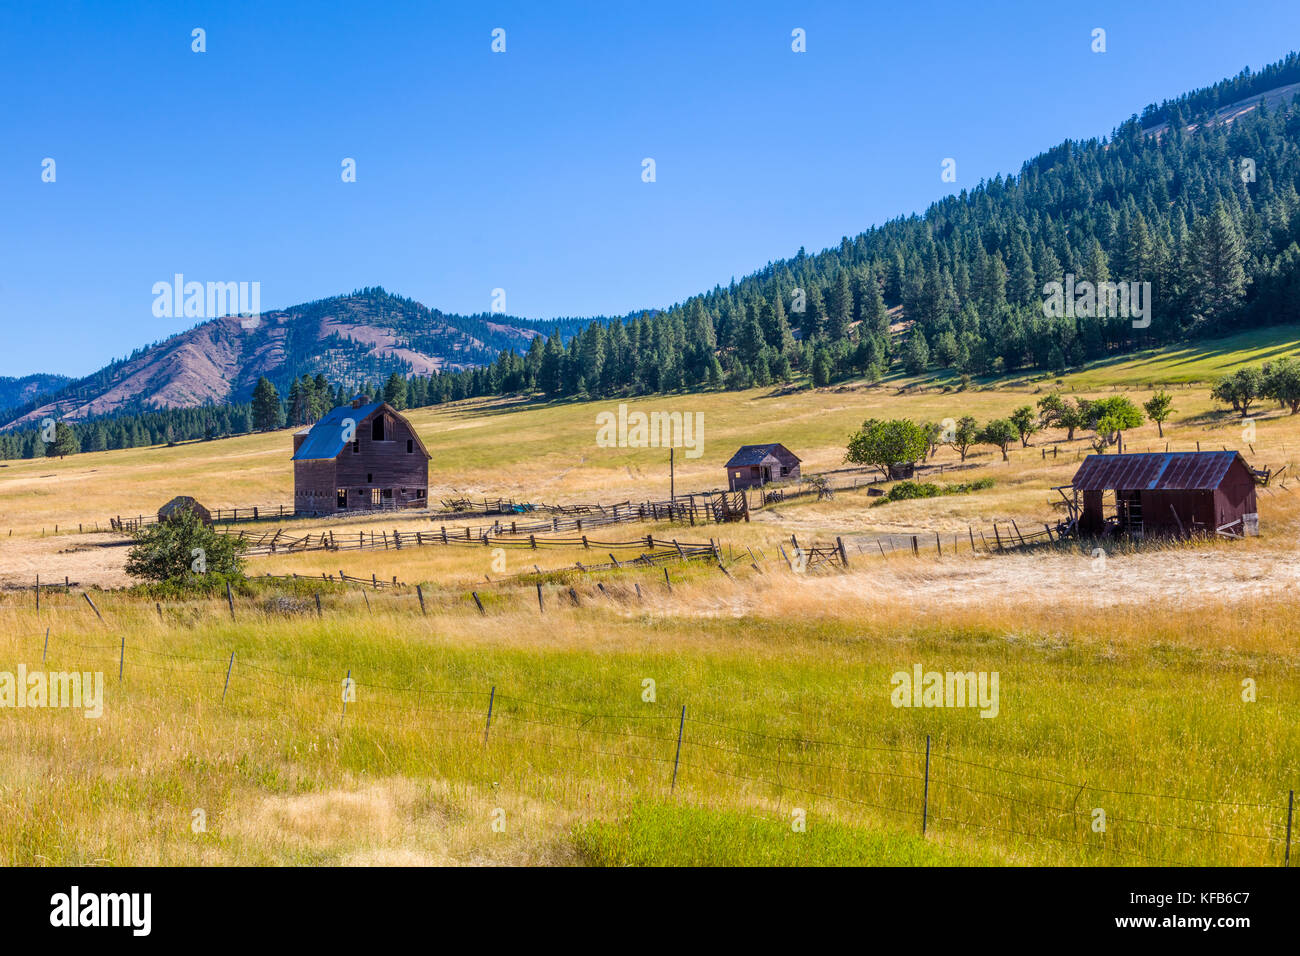 Old barn along Rt 97 in north western Washington State in the United States - Stock Image